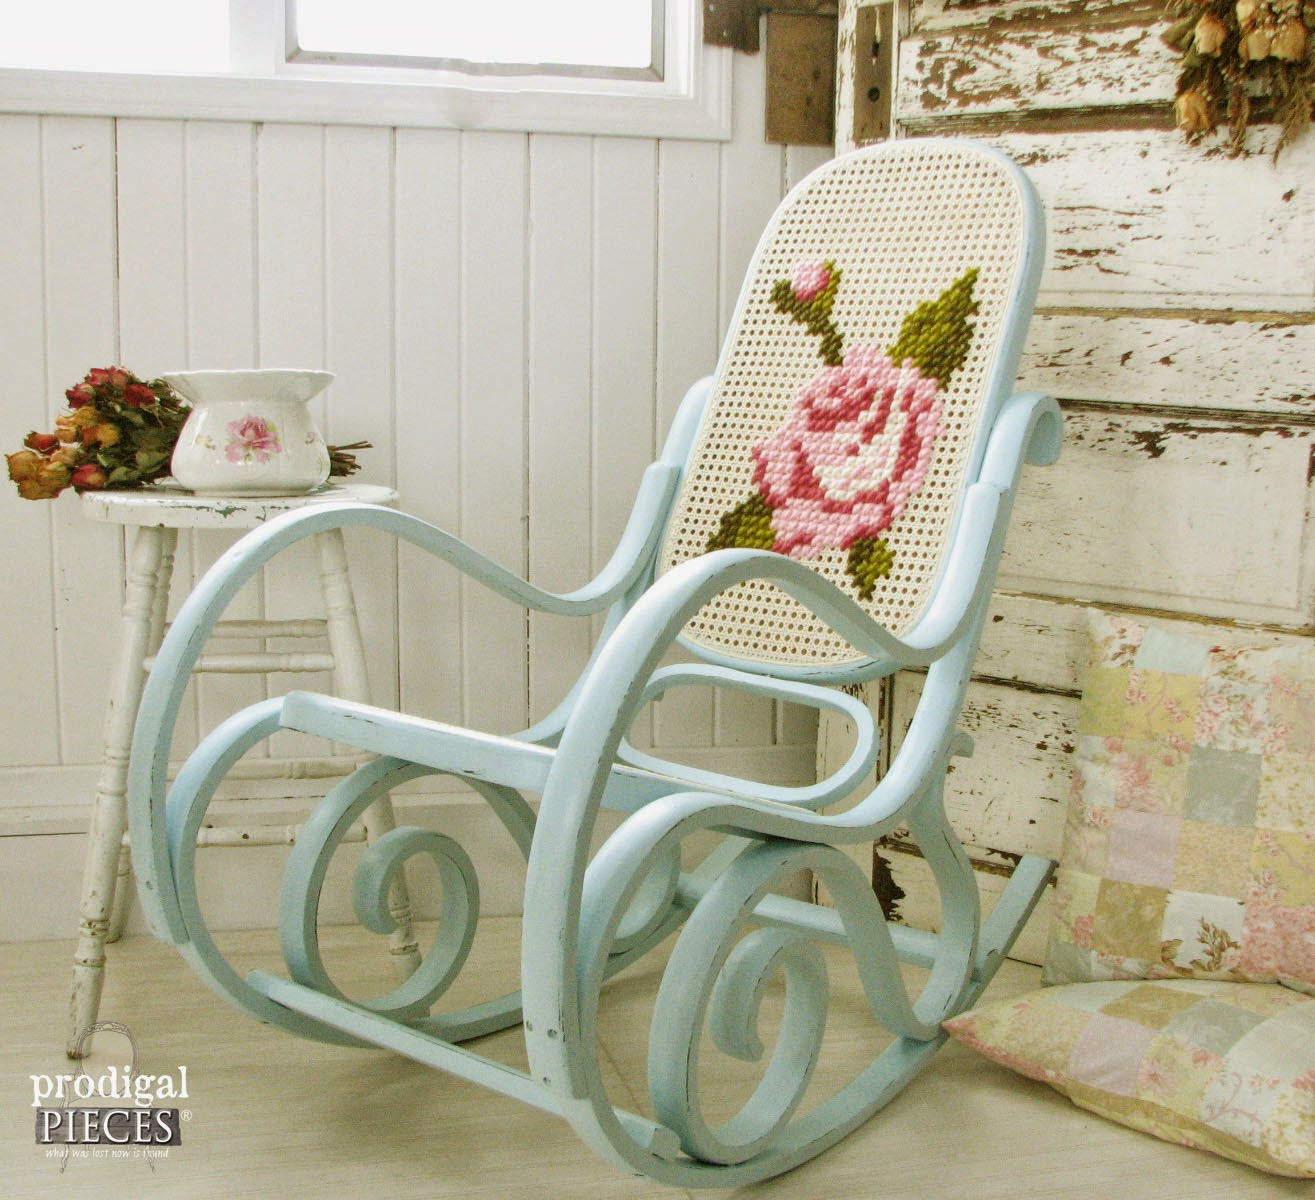 Antique Vintage Bentwood Rocking Chair Gets an Aqua Blue Facelift with Shabby Chic Crosstitch by Prodigal Pieces | prodigalpieces.com